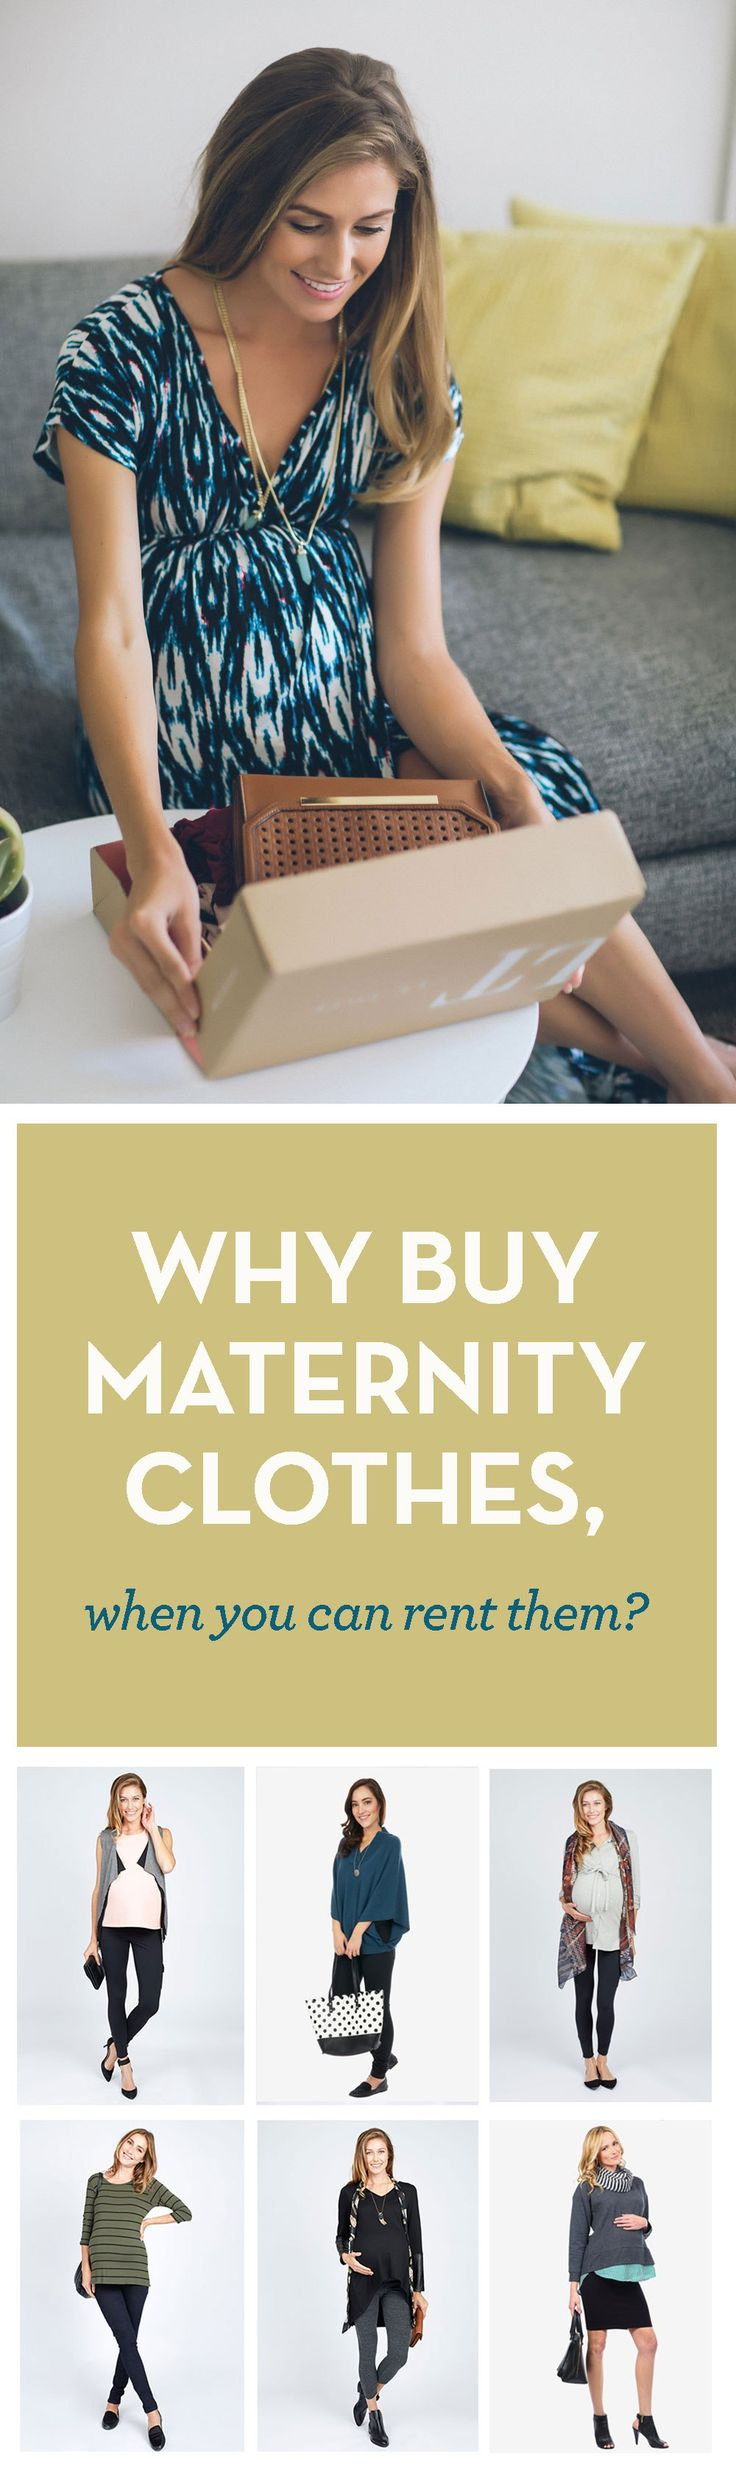 Check out this service from Le Tote that let's you borrow maternity clothes then swap them out when you want a change. Brilliant!